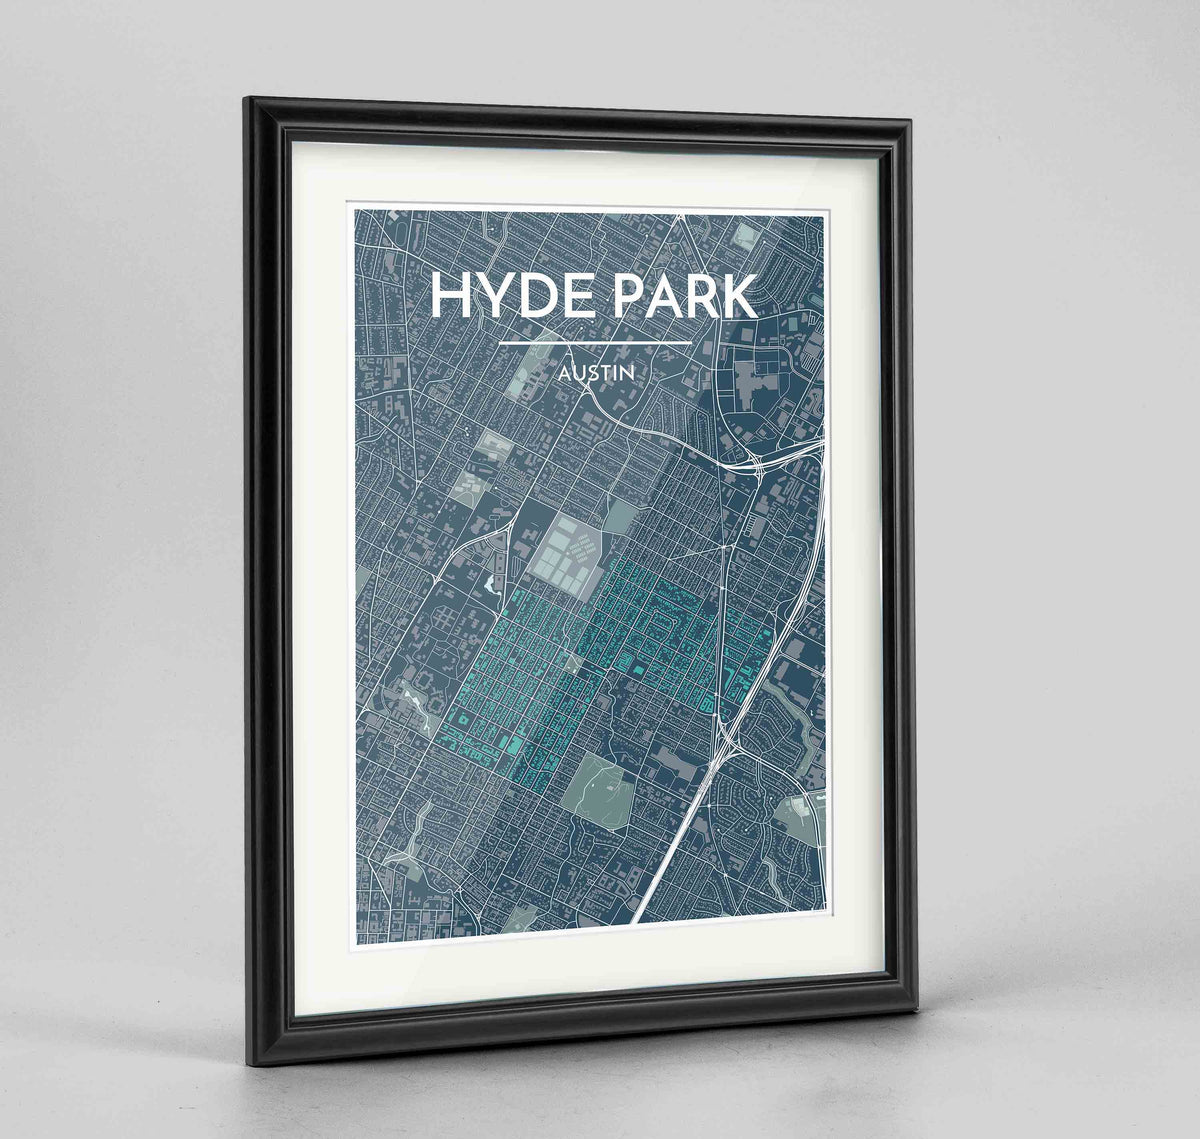 "Framed Hyde Park Neighbourhood of Austin Map Art Print 24x36"" Traditional Black frame Point Two Design Group"